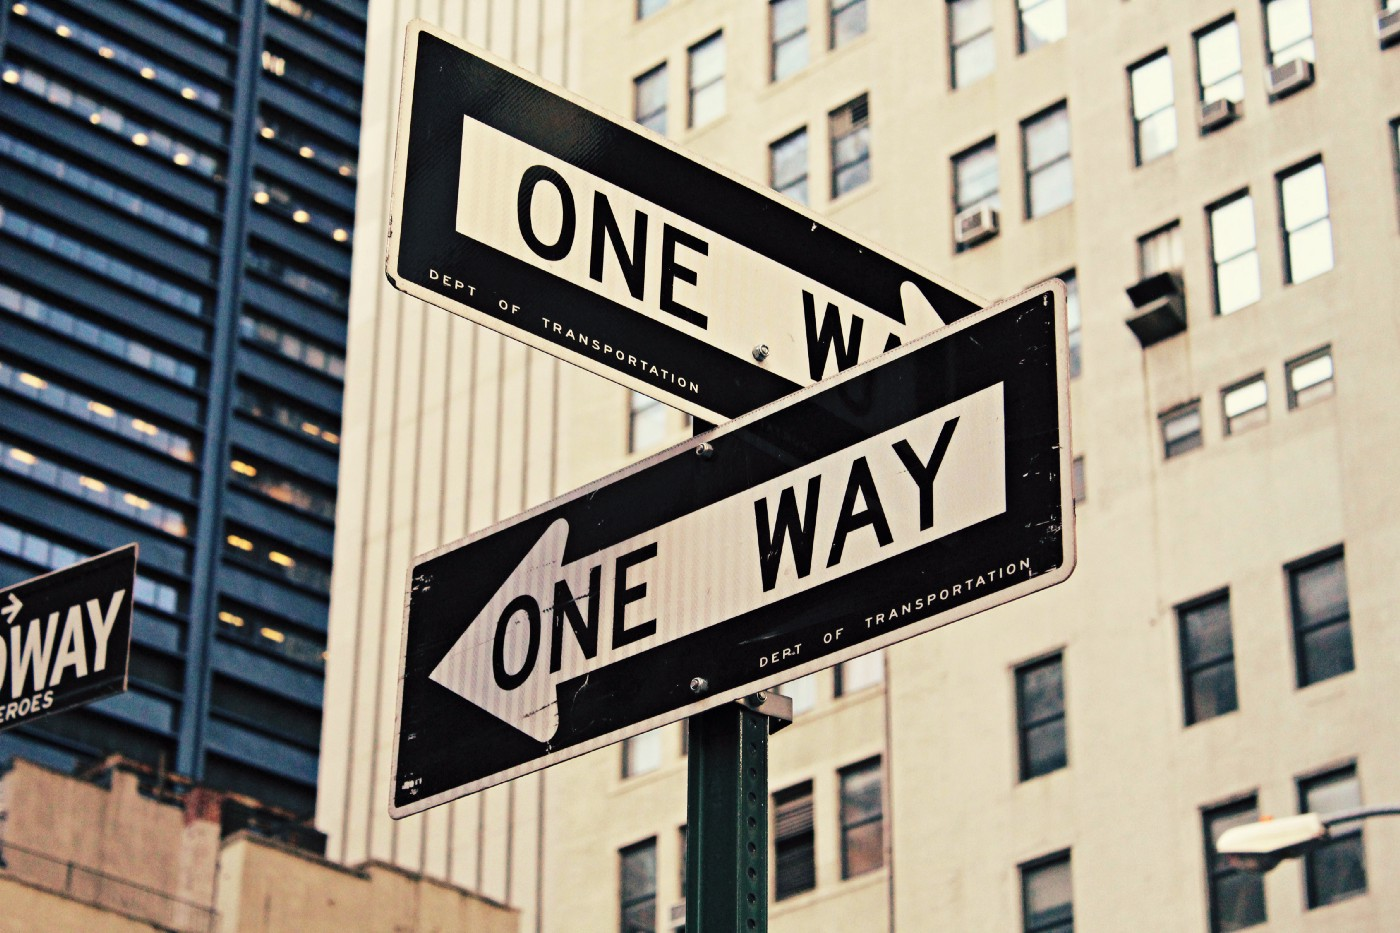 Two one-way signs pointing opposite directions